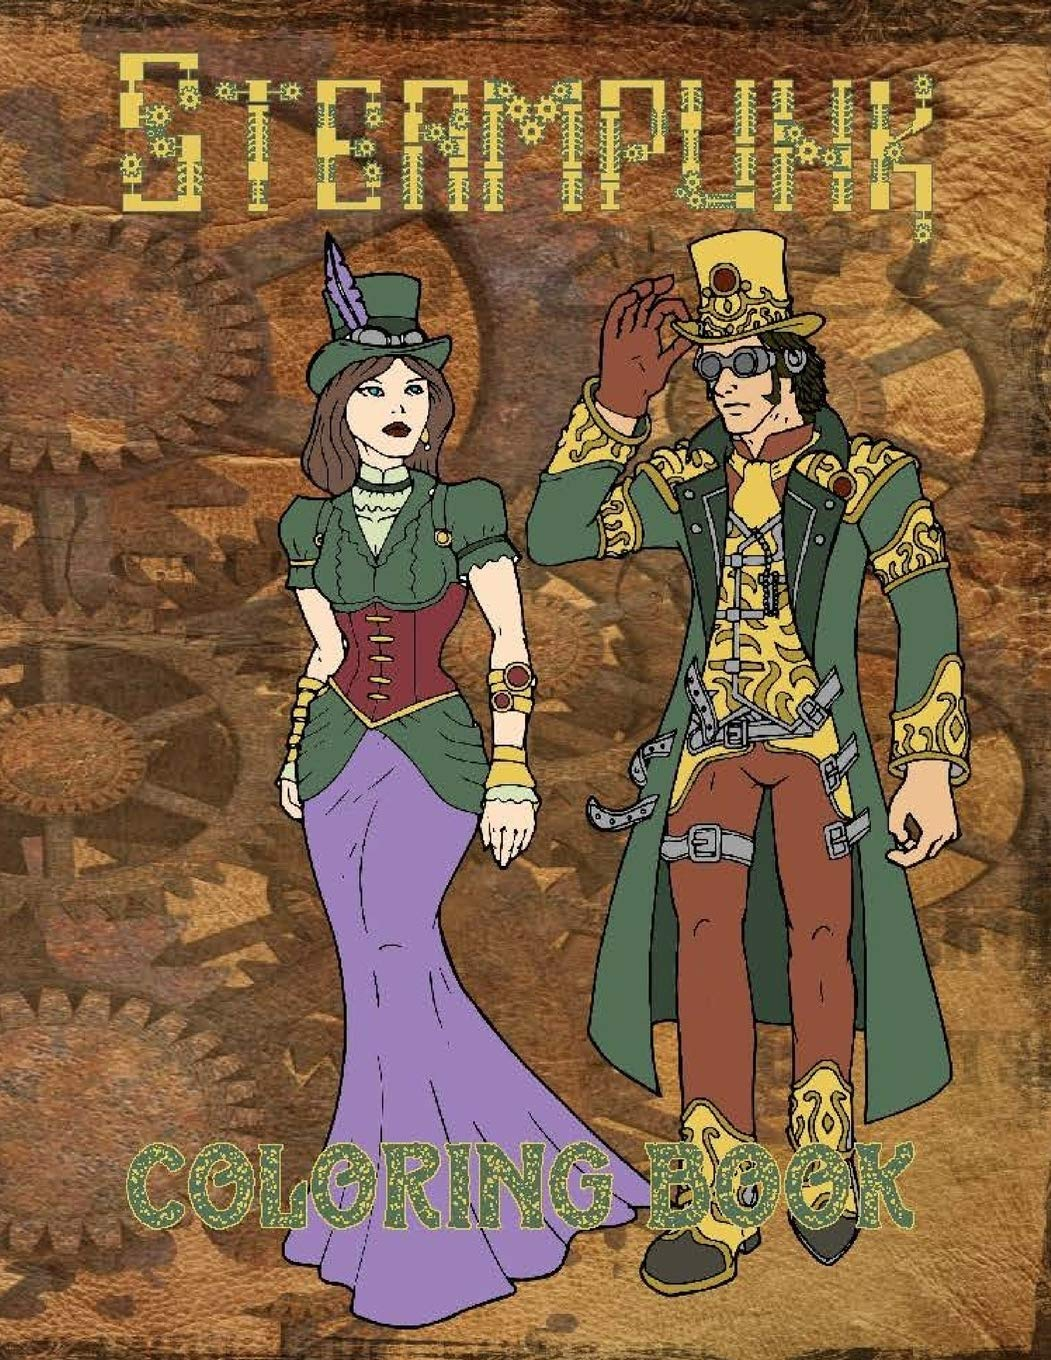 Steampunk Coloring Pages Stock Vectors, Images & Vector Art ... | 1360x1051